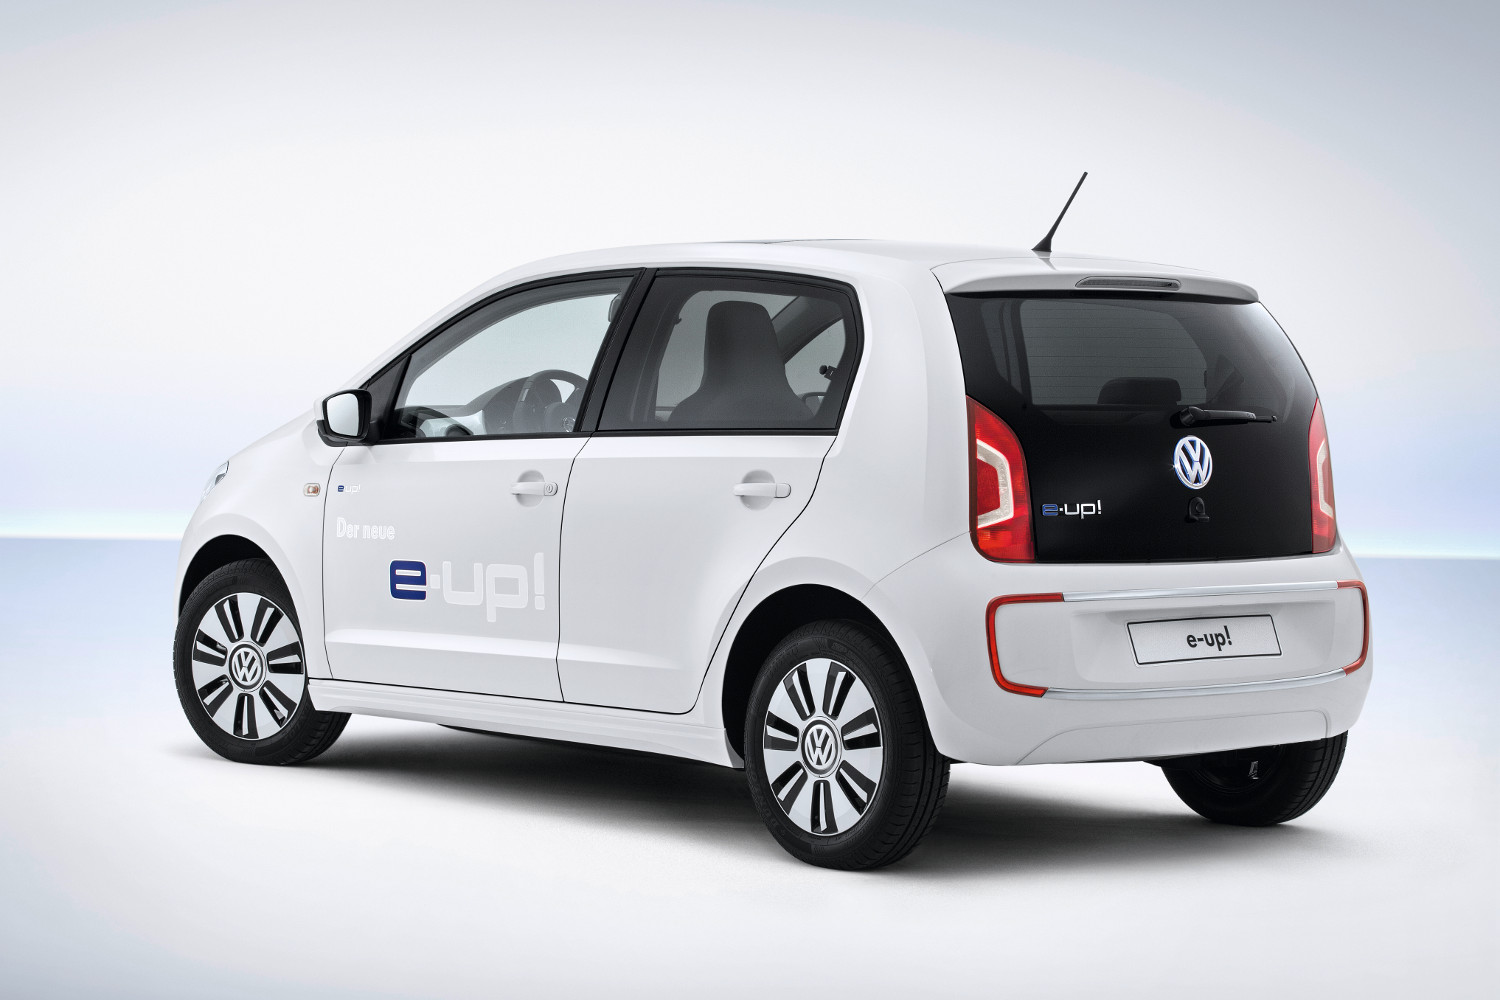 volkswagen e up preis ab euro 160 km reichweite elektroauto blog. Black Bedroom Furniture Sets. Home Design Ideas